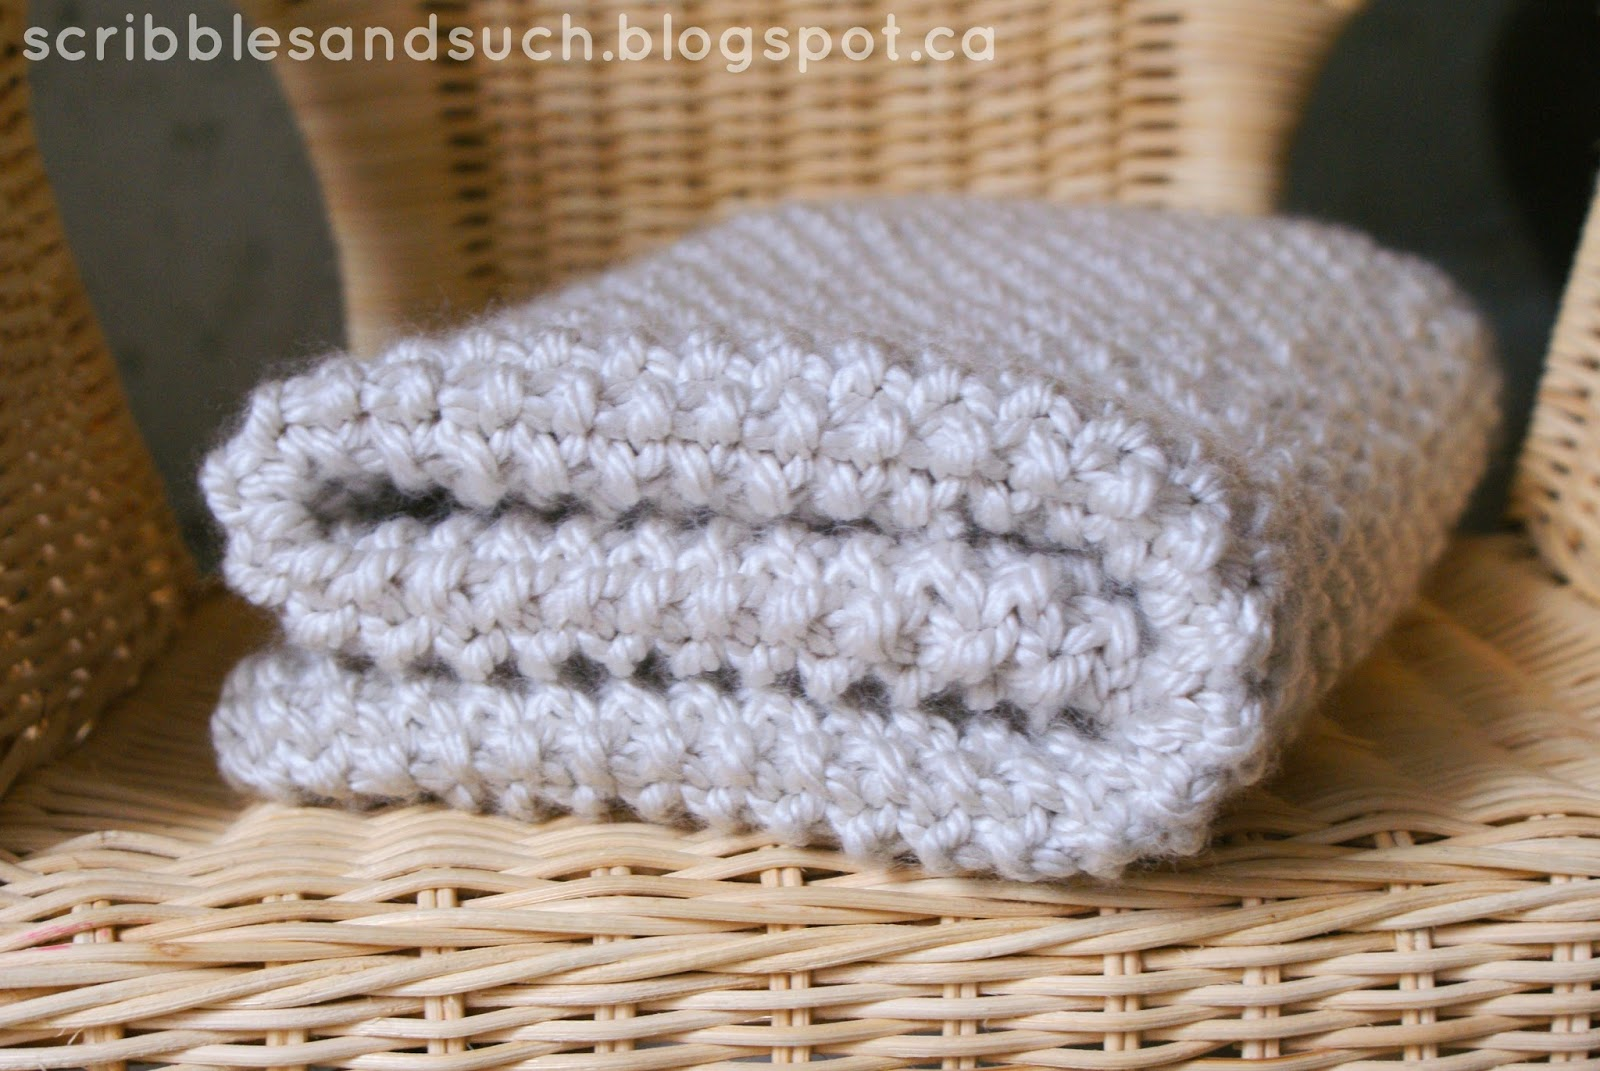 Chunky Baby Knitting Patterns Free : scribbles & such: Chunky Knitted Baby Blanket